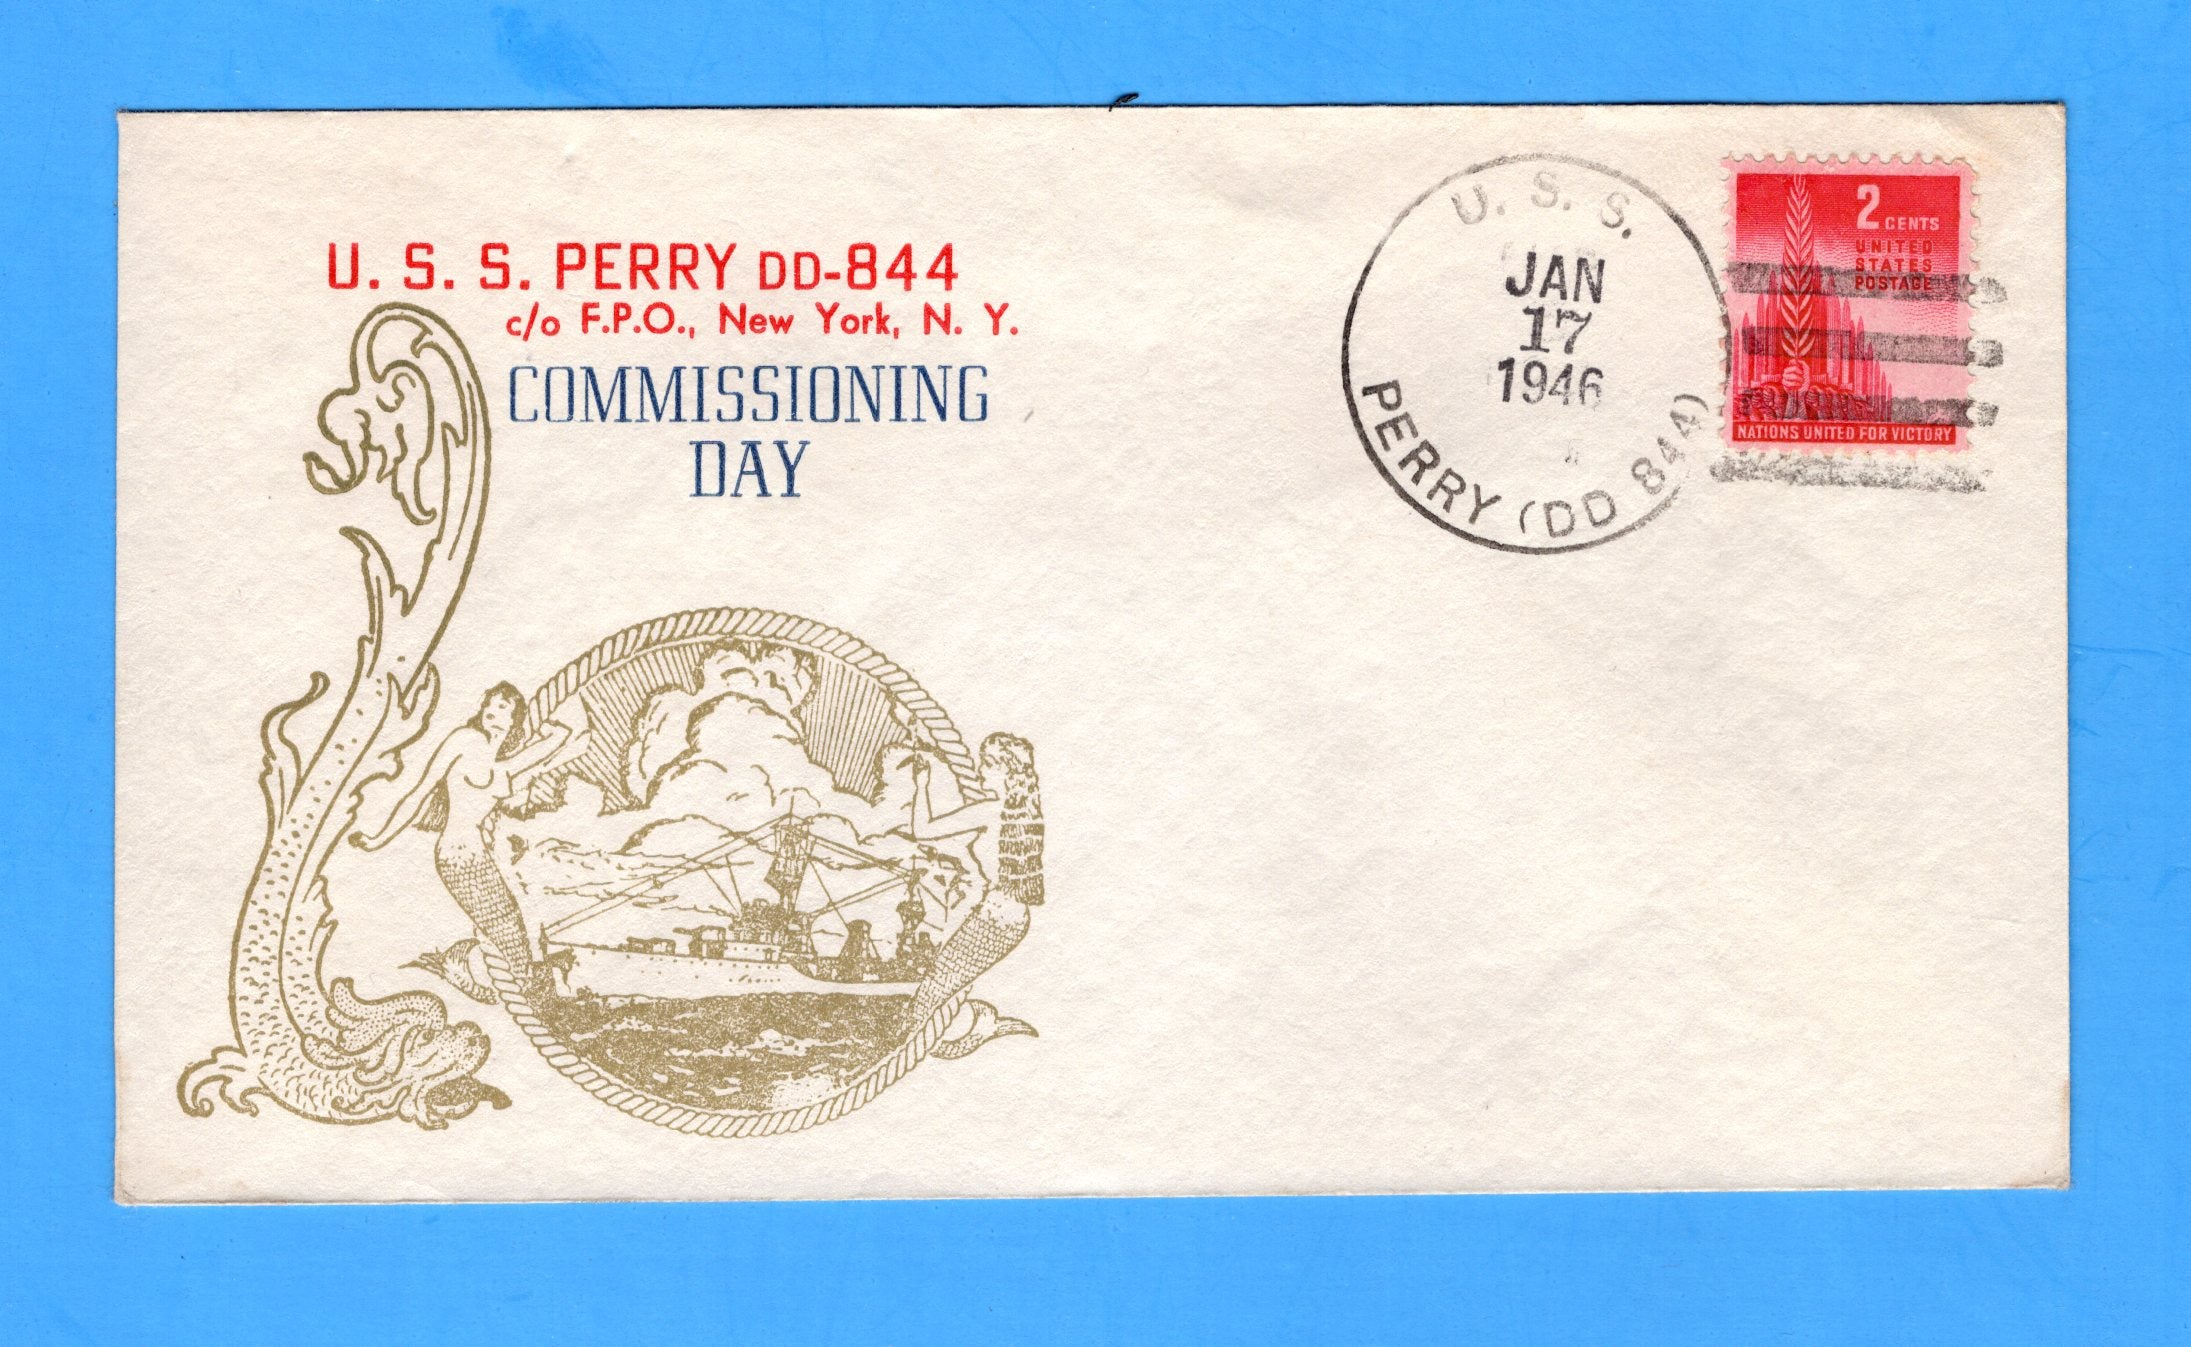 USS Perry DD-844 Commissioned January 17, 1946